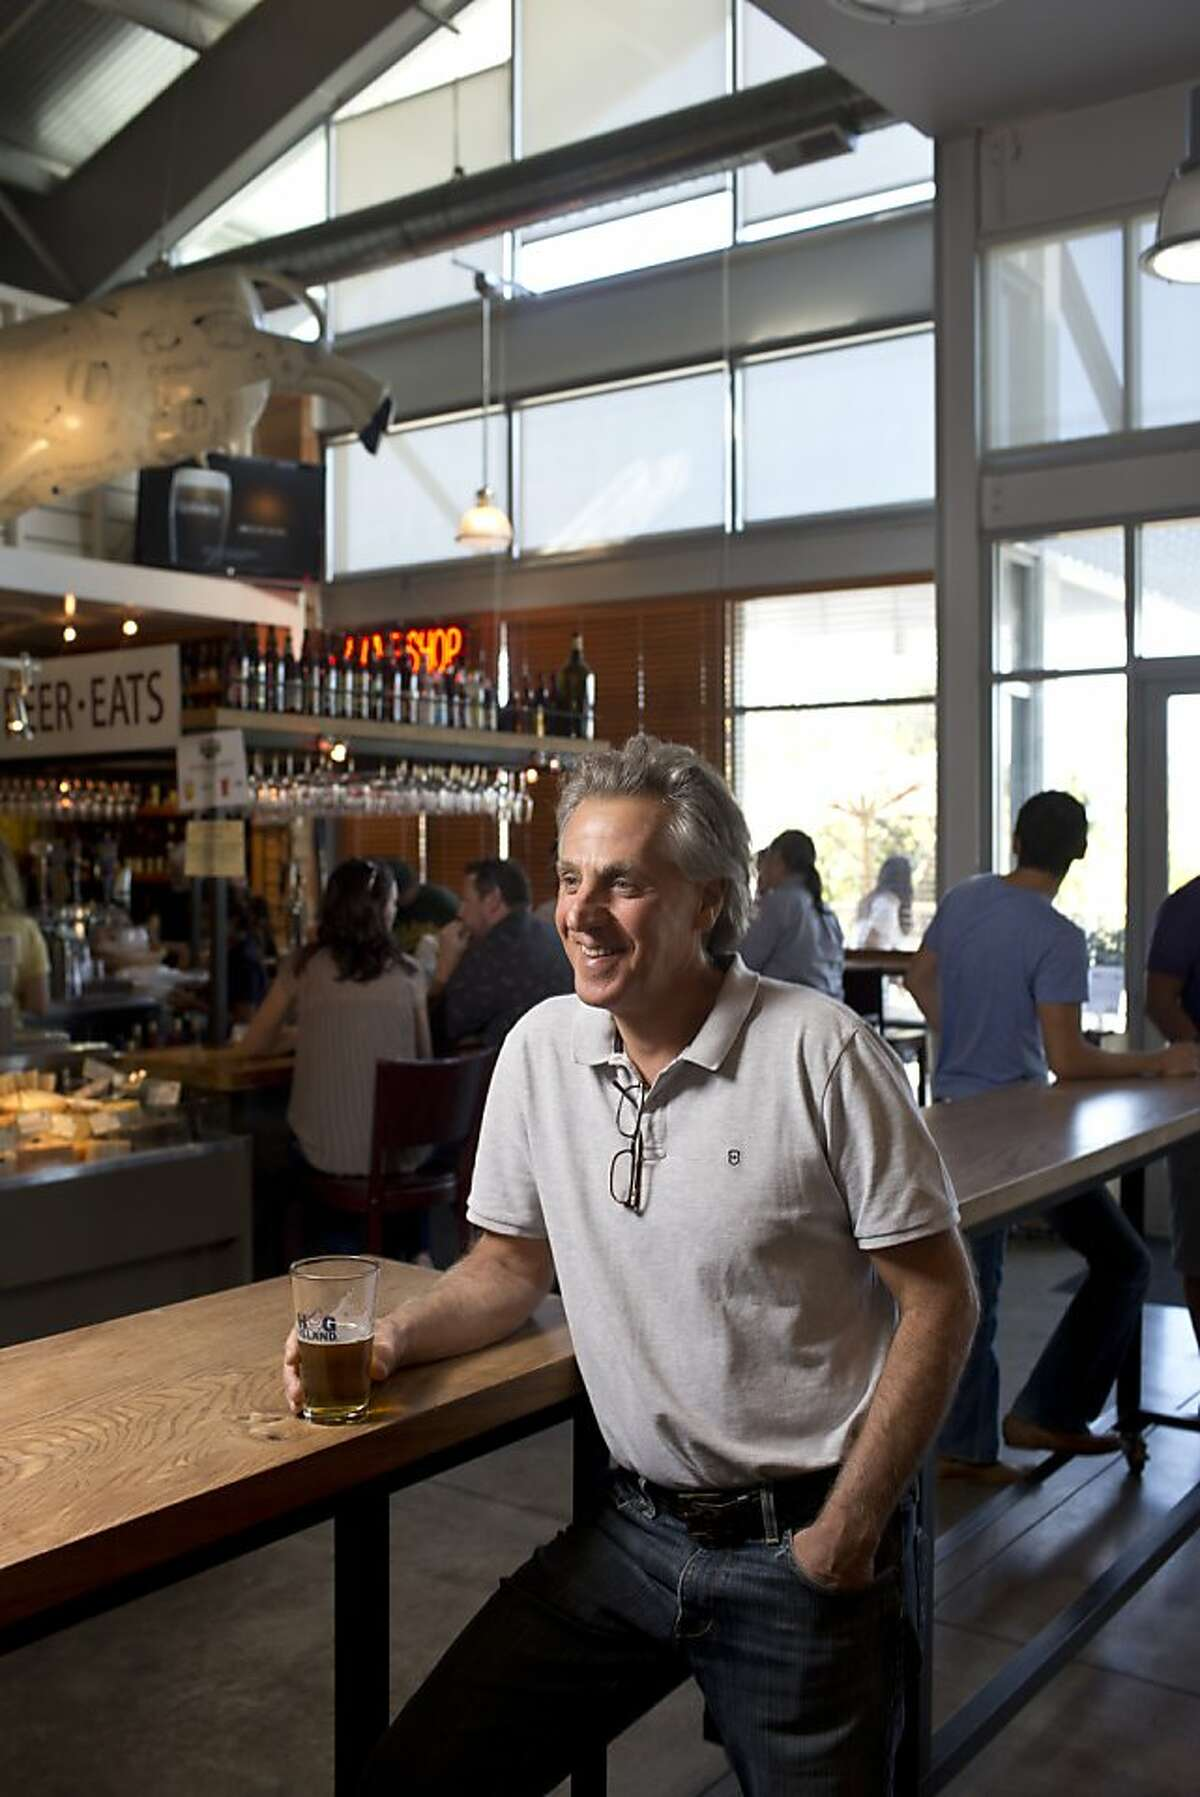 Founder and manager Steve Carlin has a beer at the Oxbow Public Market in Napa, Calif., Friday, October 4, 2013.